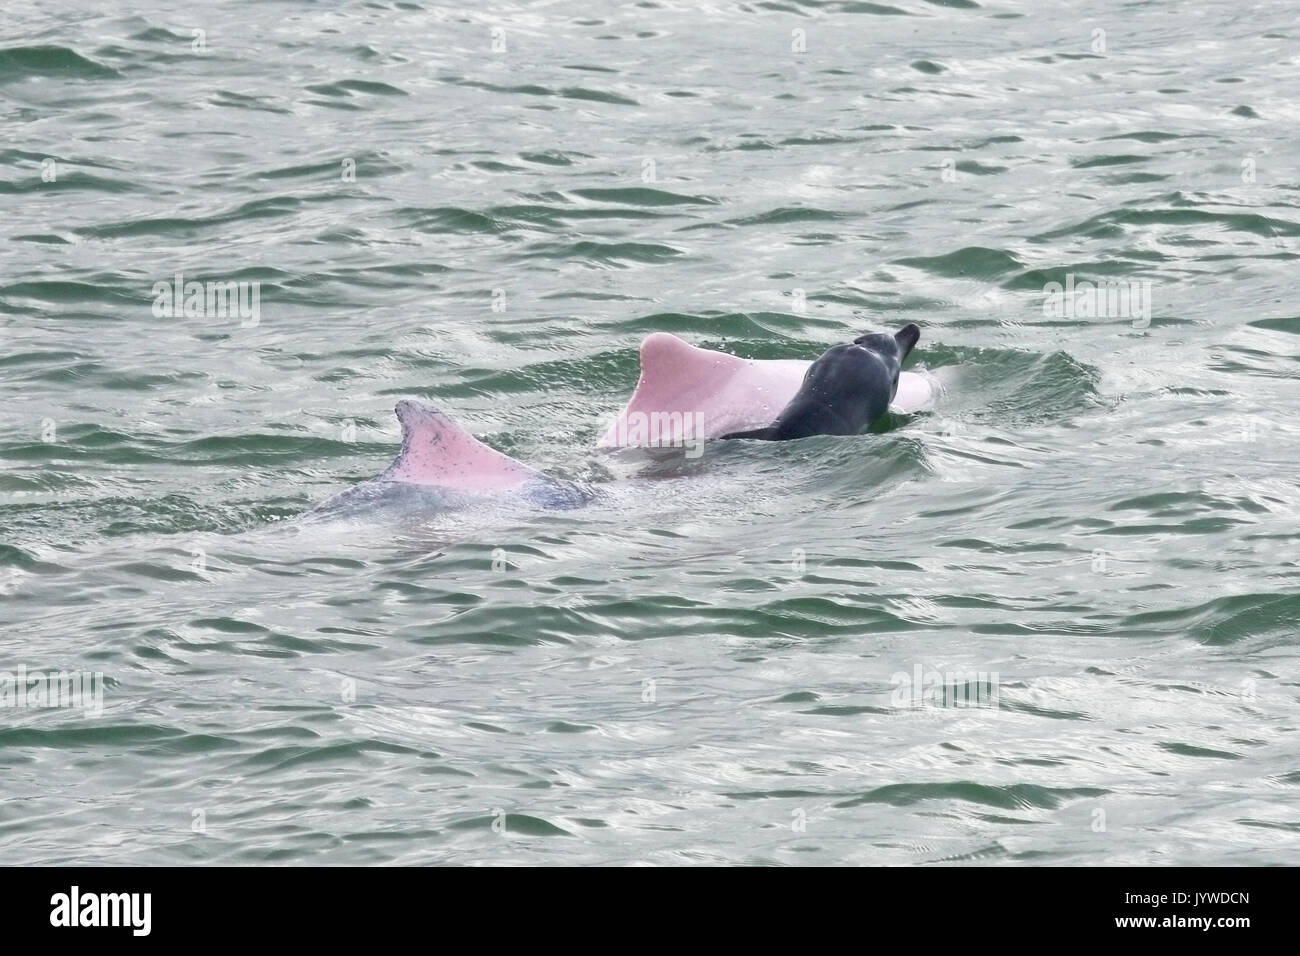 Indo-Pacific Humpback Dolphin (Sousa chinensis) mother and new born baby with foetal folds in HK waters. - Stock Image